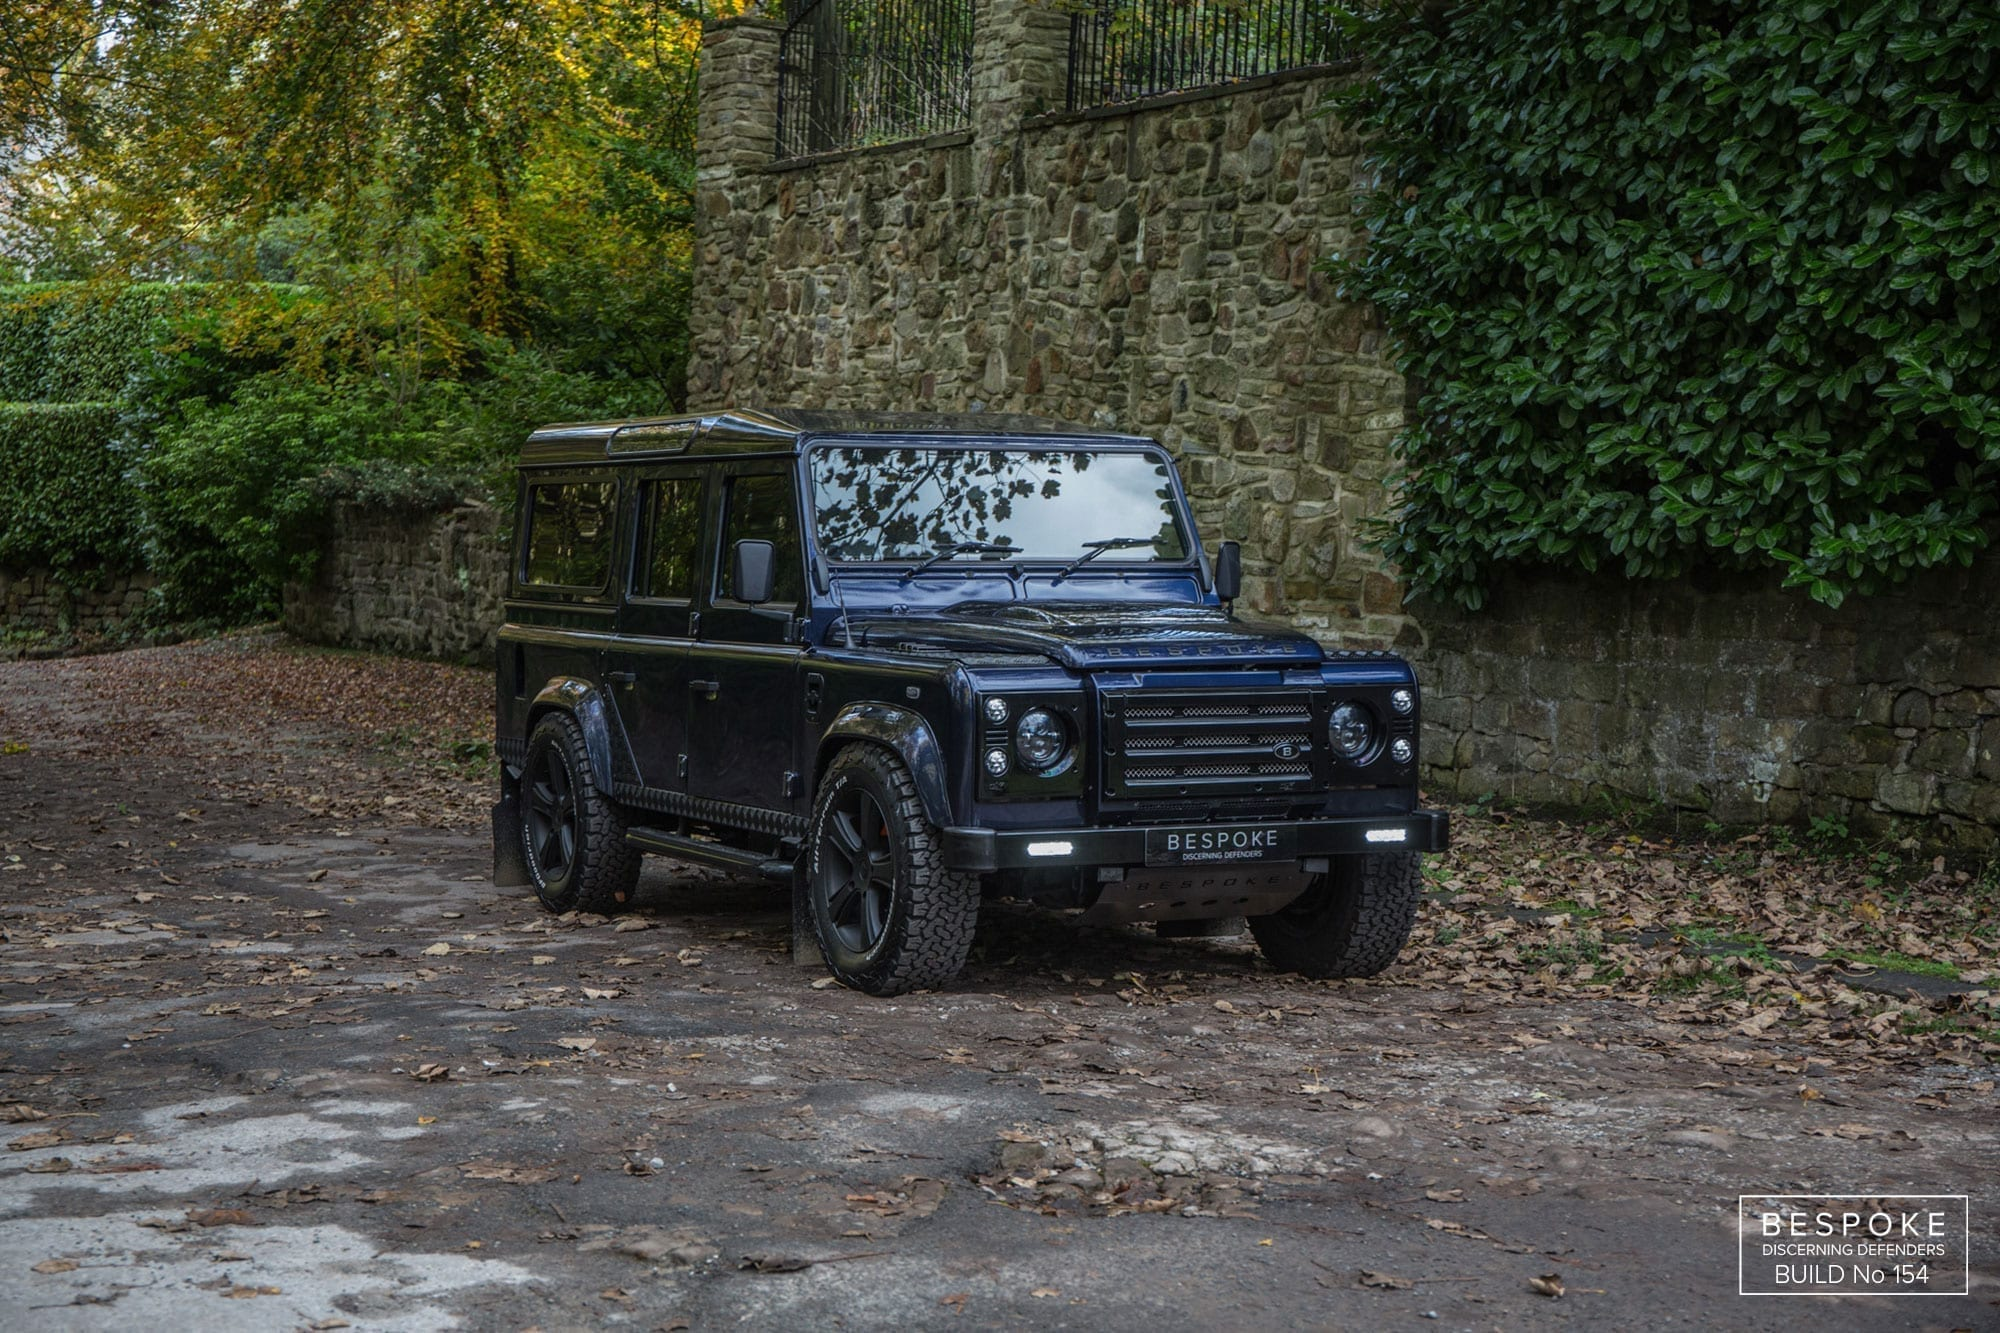 Blue defender 110 station wagon beside stone wall